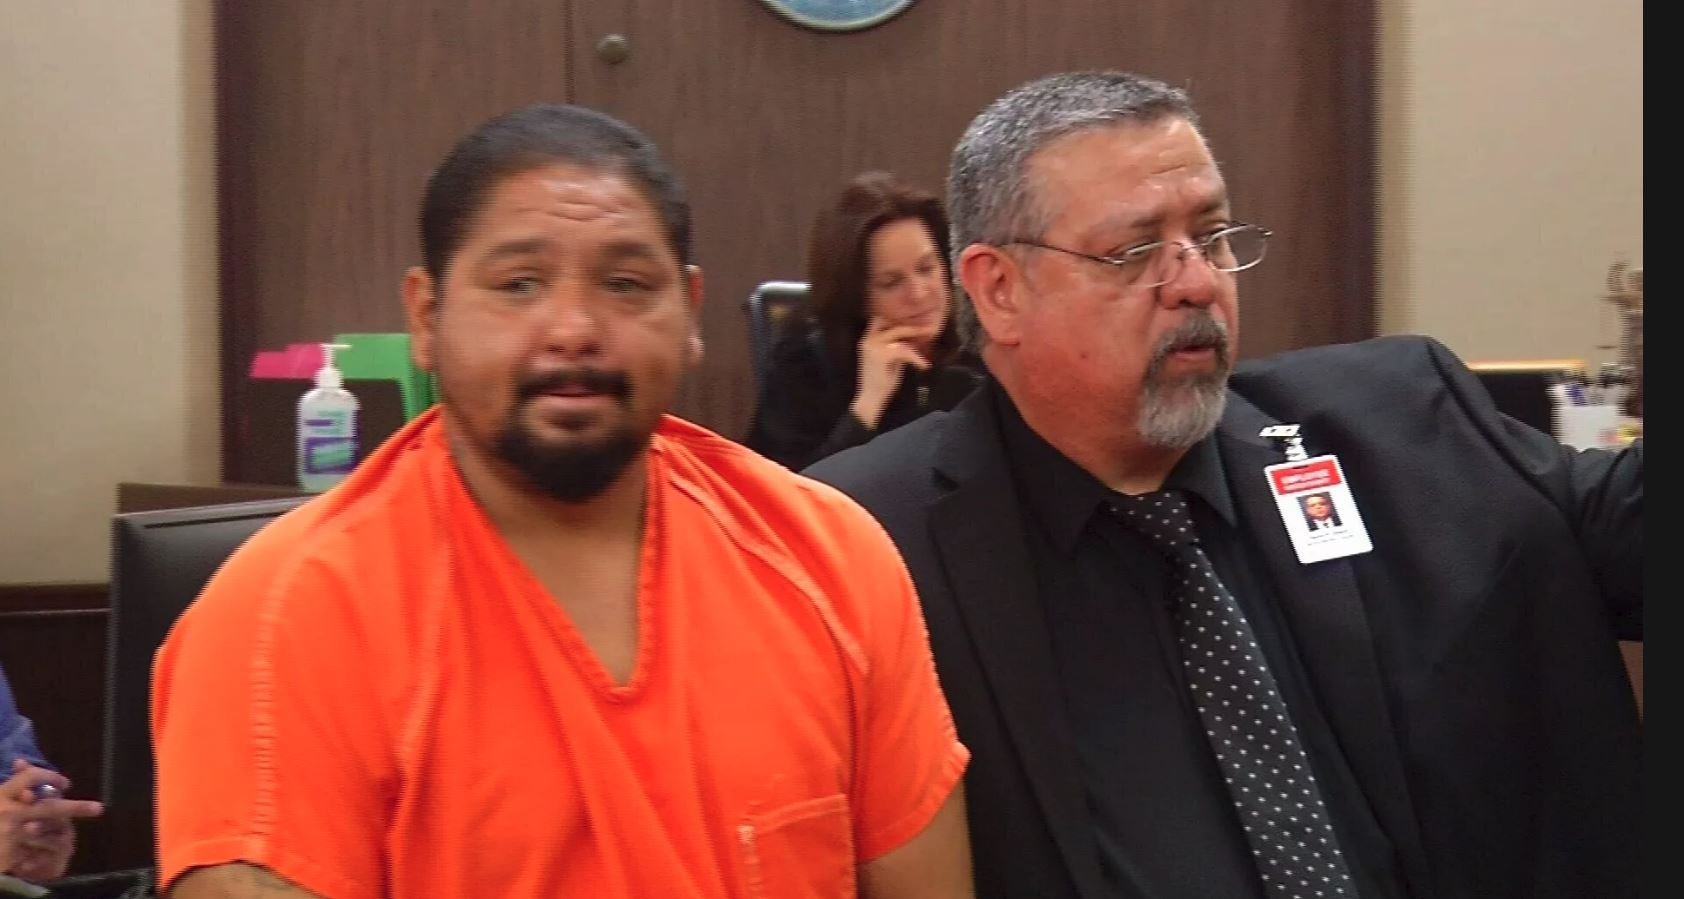 Jacob Nunez is accused of killing his former father in law in July of 2017. photo date July 2017